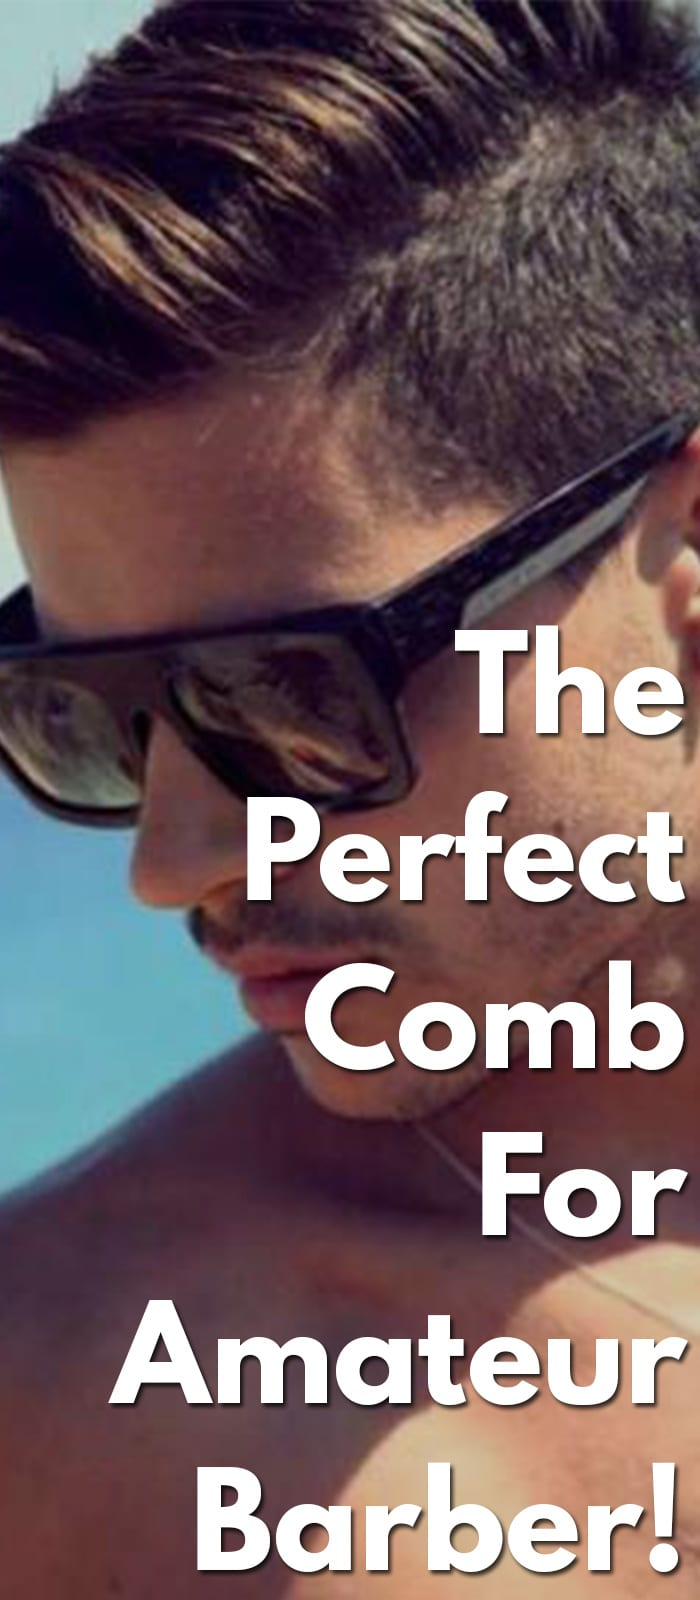 The-Perfect-Comb-For-Amateur-Barber!.